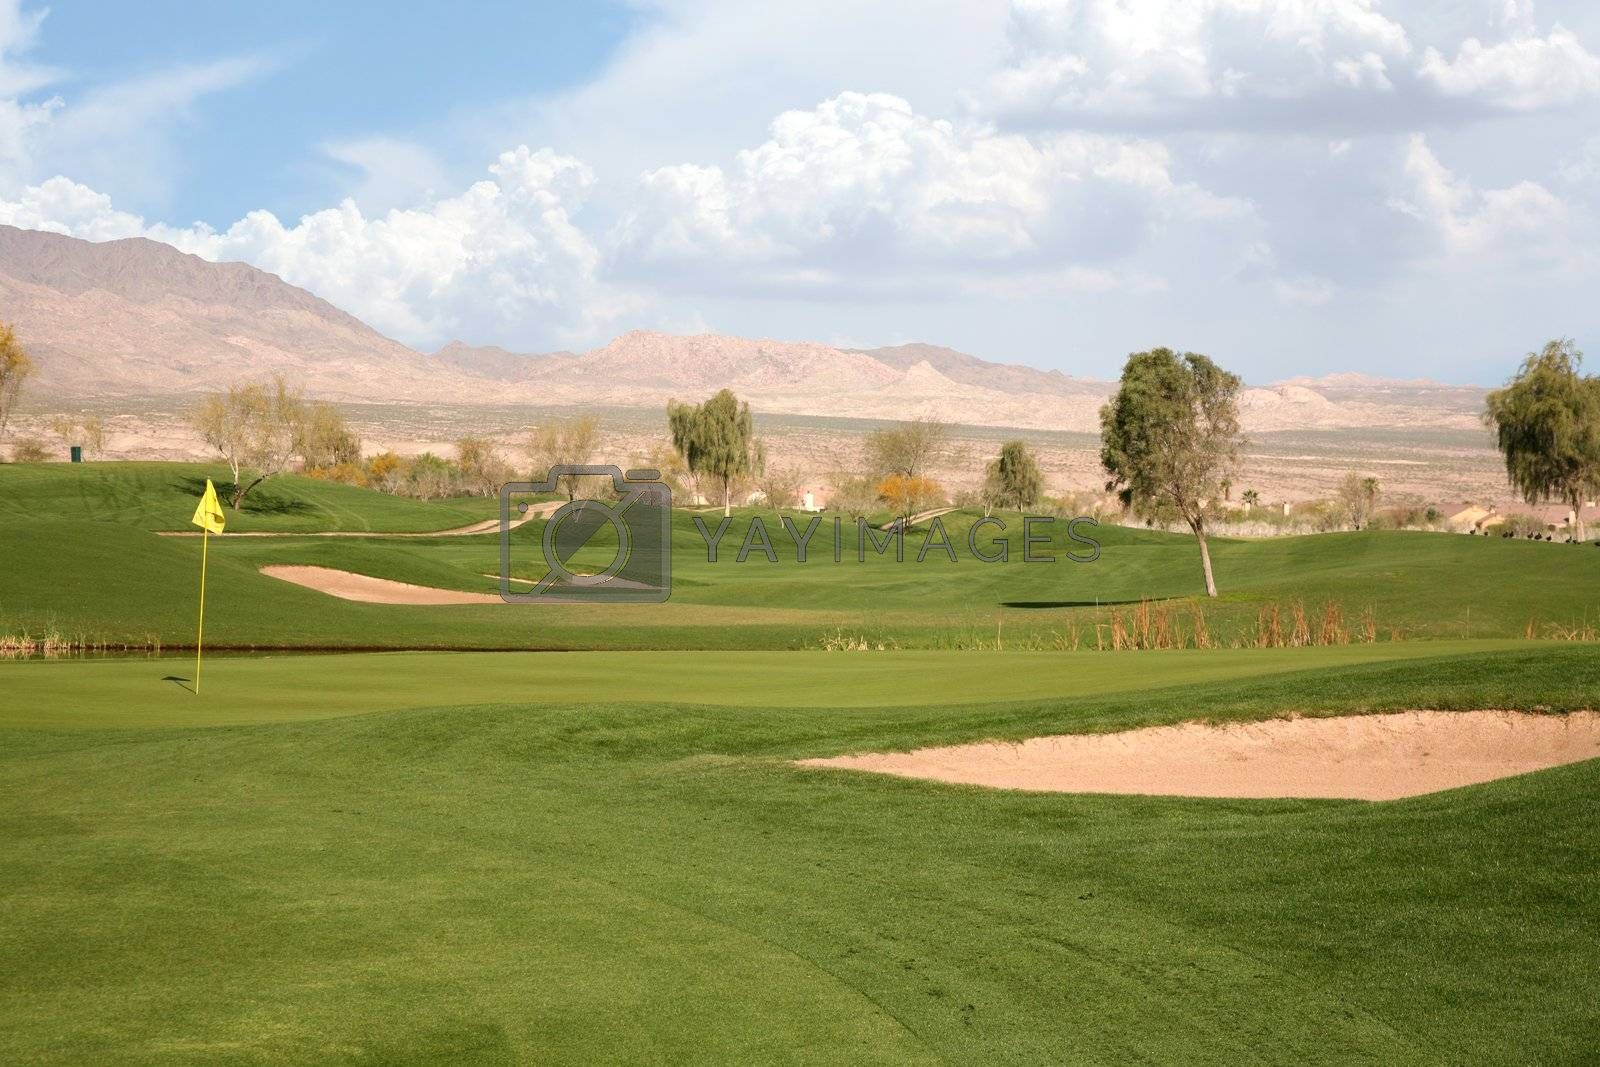 Royalty free image of Golf course 2 by scrappinstacy